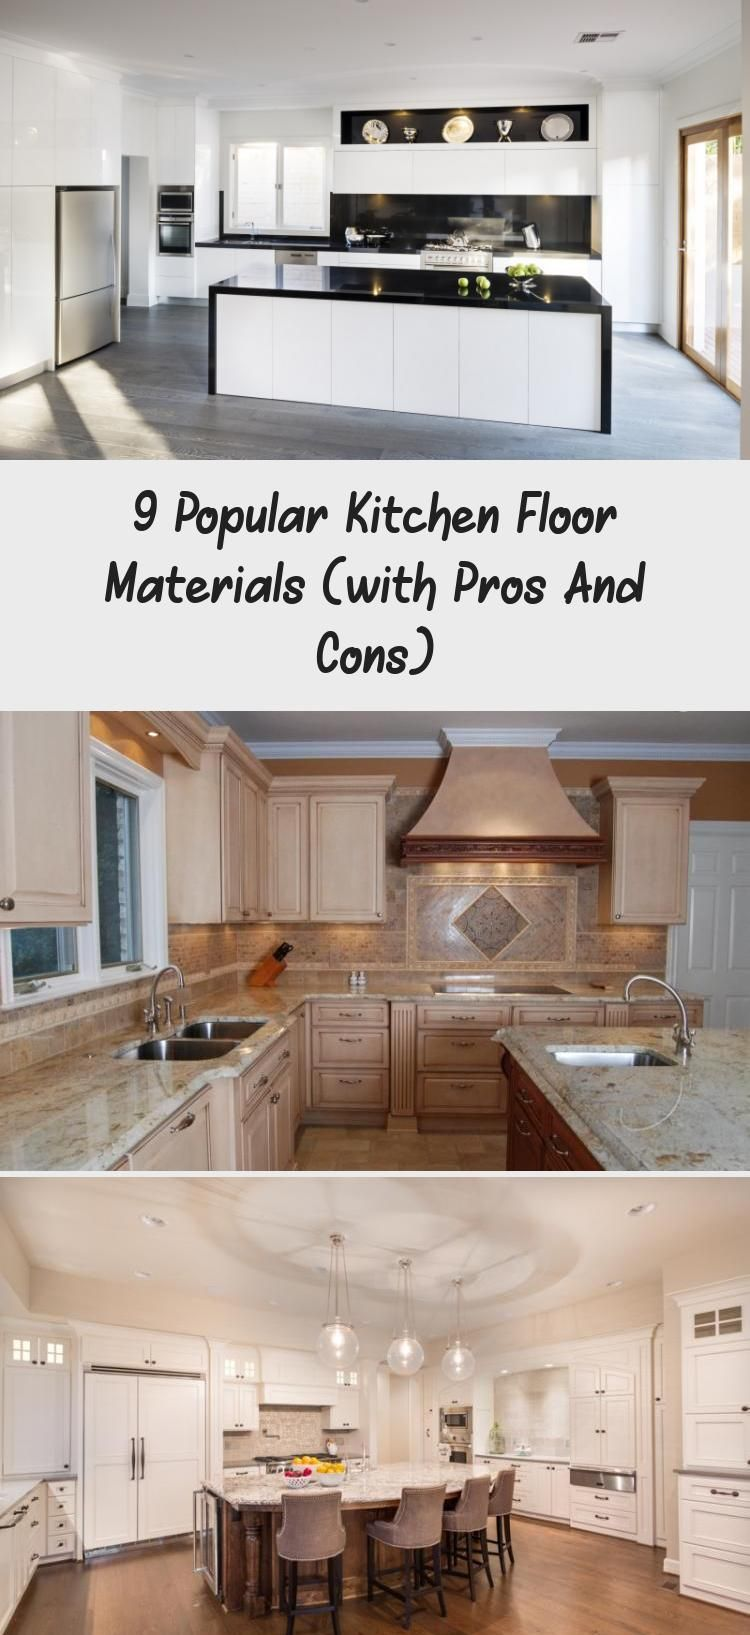 9 Popular Kitchen Floor Materials With Pros And Cons Decorations In 2020 Patterned Kitchen Tiles Kitchen Flooring Kitchen Marble